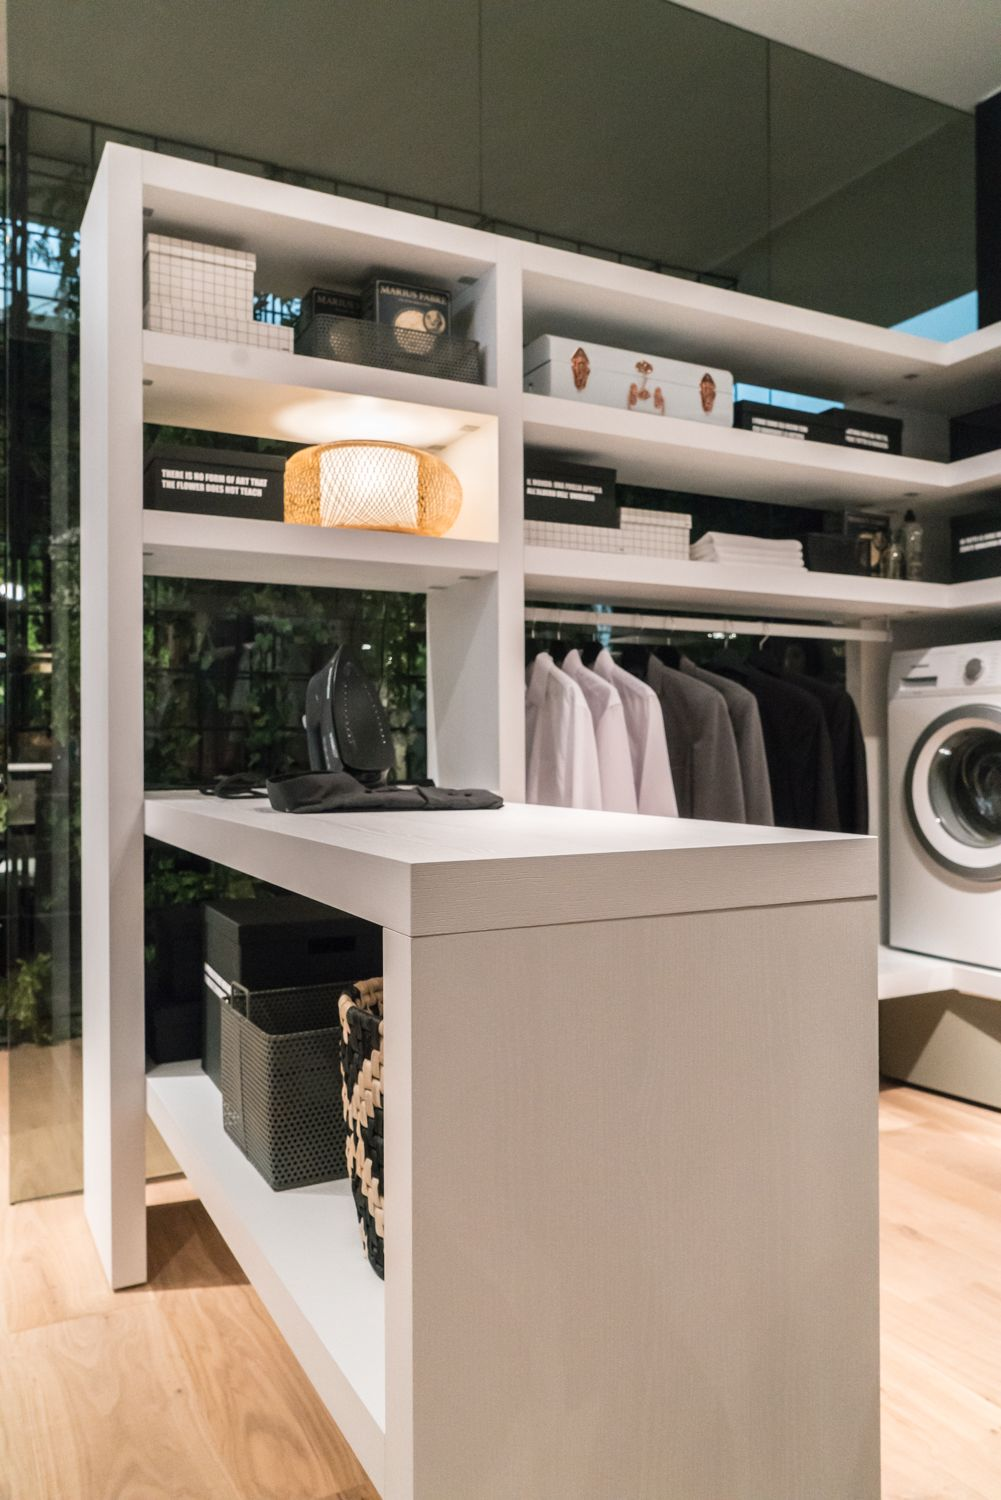 Laundry rooms and dressings are spaces which can make the most out of any shelving idea